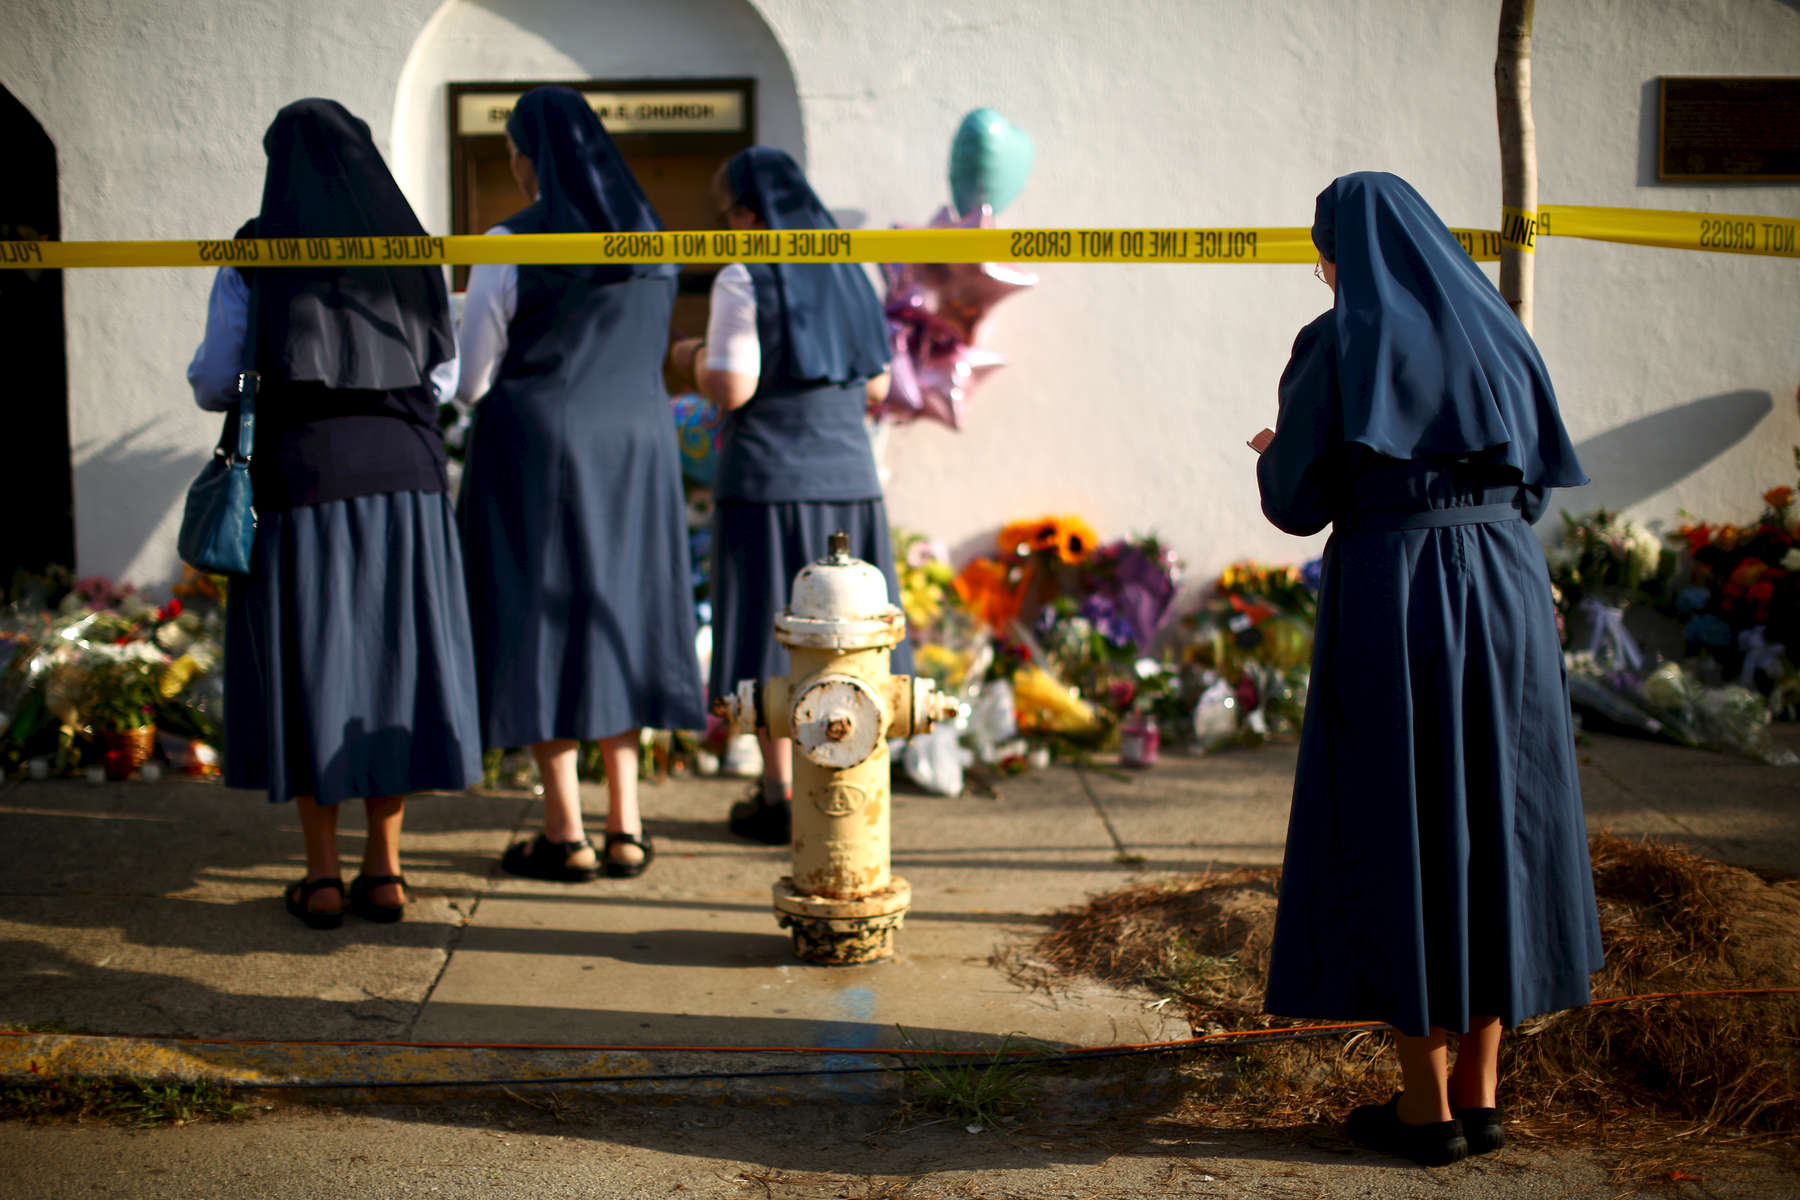 NAT *** Charleston, SC -- 06/19/2015 - Nuns prayed outside the Emanuel AME Church in Charleston, SC on Friday morning. Scenes from Charleston, SC after a gunman opened fire in a historic black church on Wednesday night.  ****DO NOT USE WITHOUT SPEAKING TO NATIONAL PHOTO EDITOR. HOLD FOR SUNDAY CHARLESTON STORY*****(Travis Dove for The New York Times)